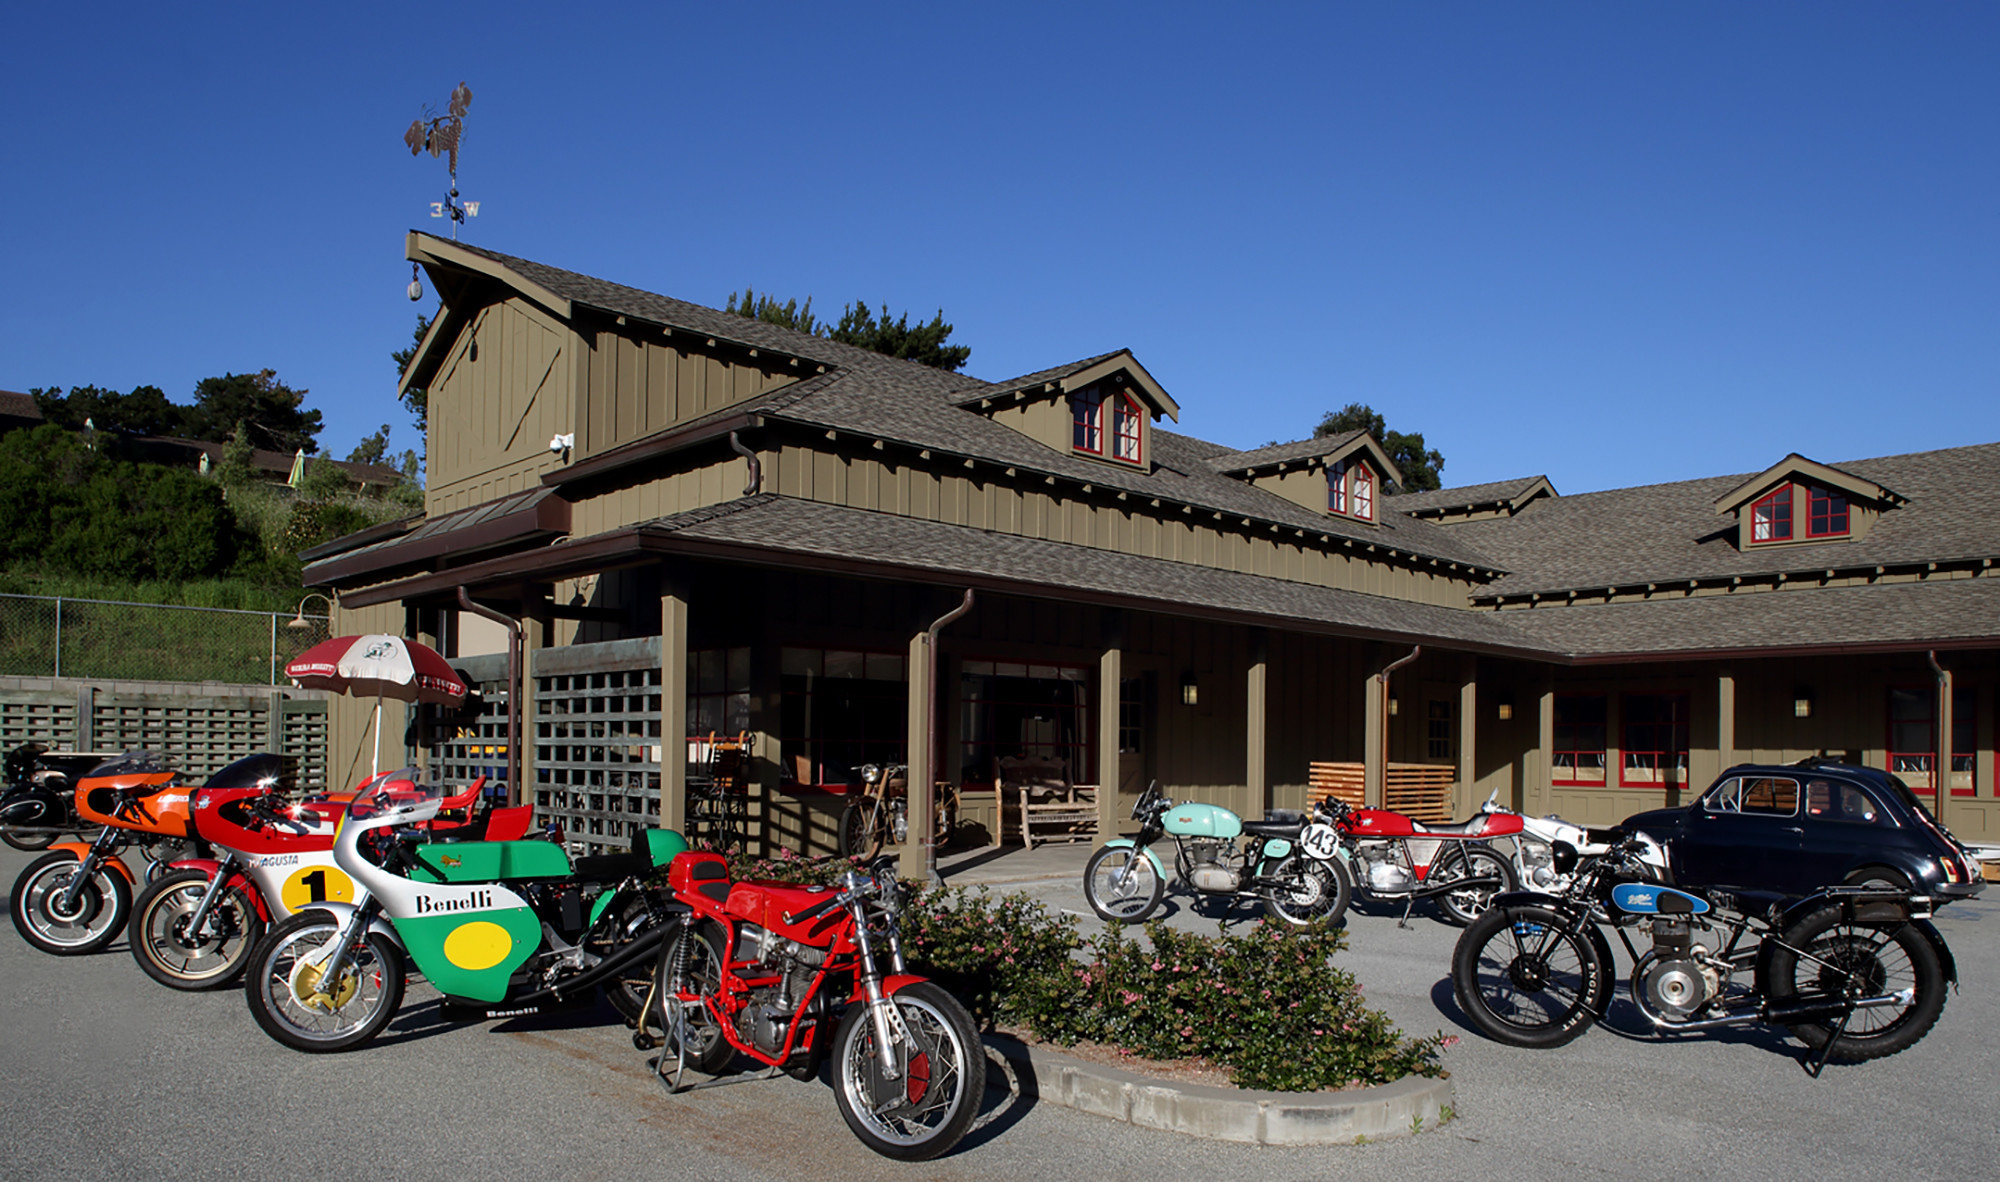 A visit to the Moto Talbott Collection motorcycle museum is part of this year's Quail Ride.